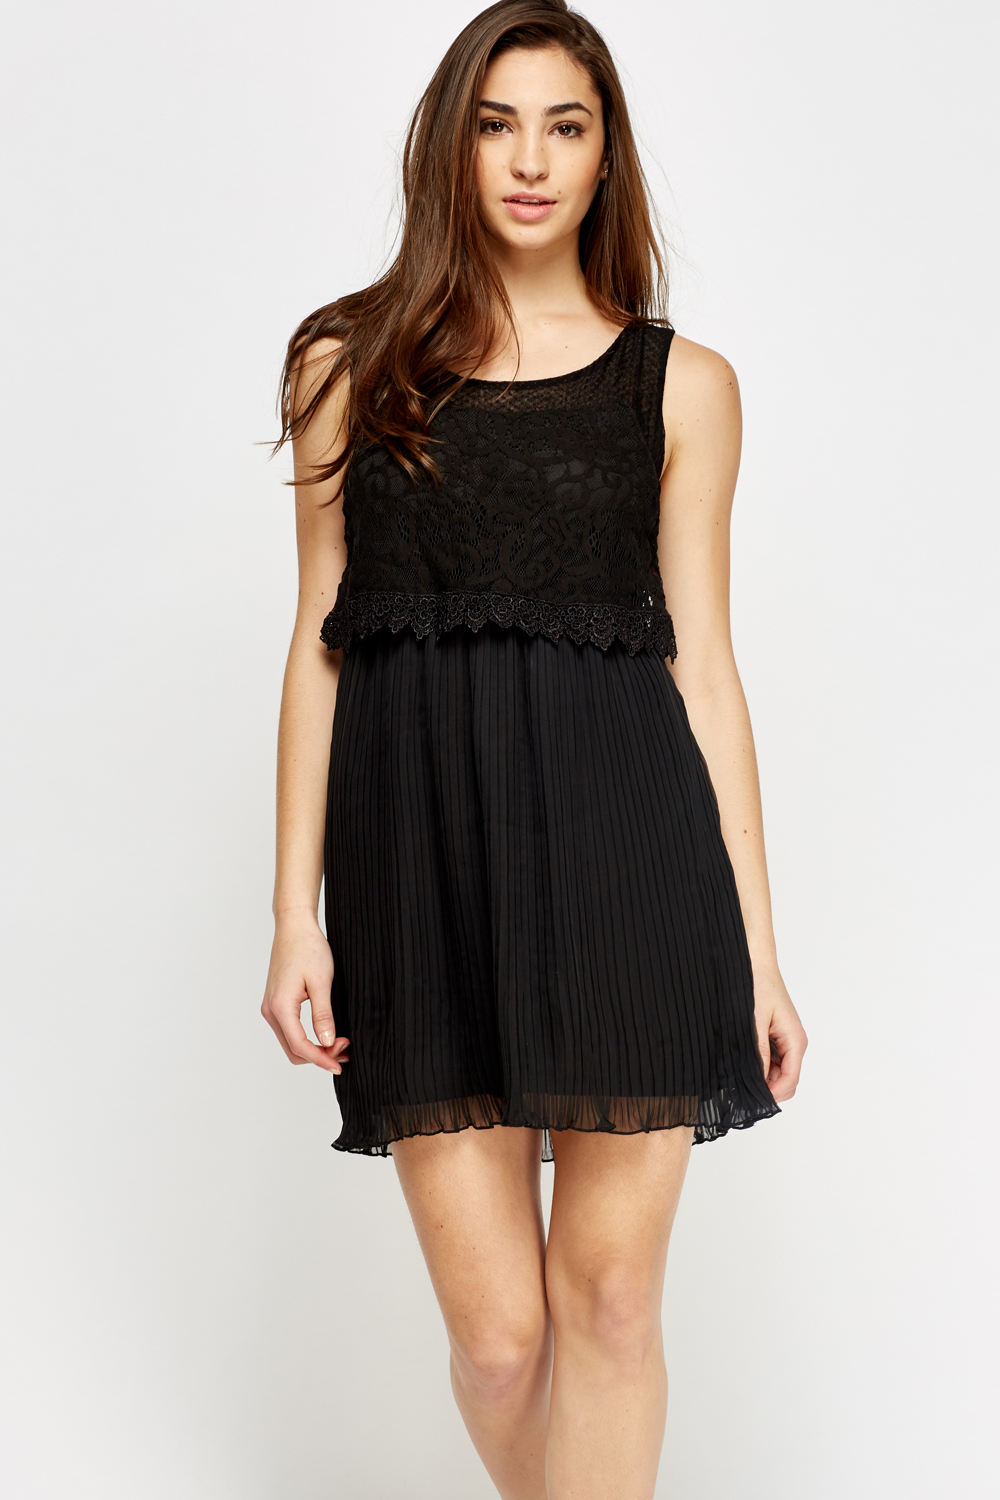 Lace Overlay Pleated Dress - Black - Just £5